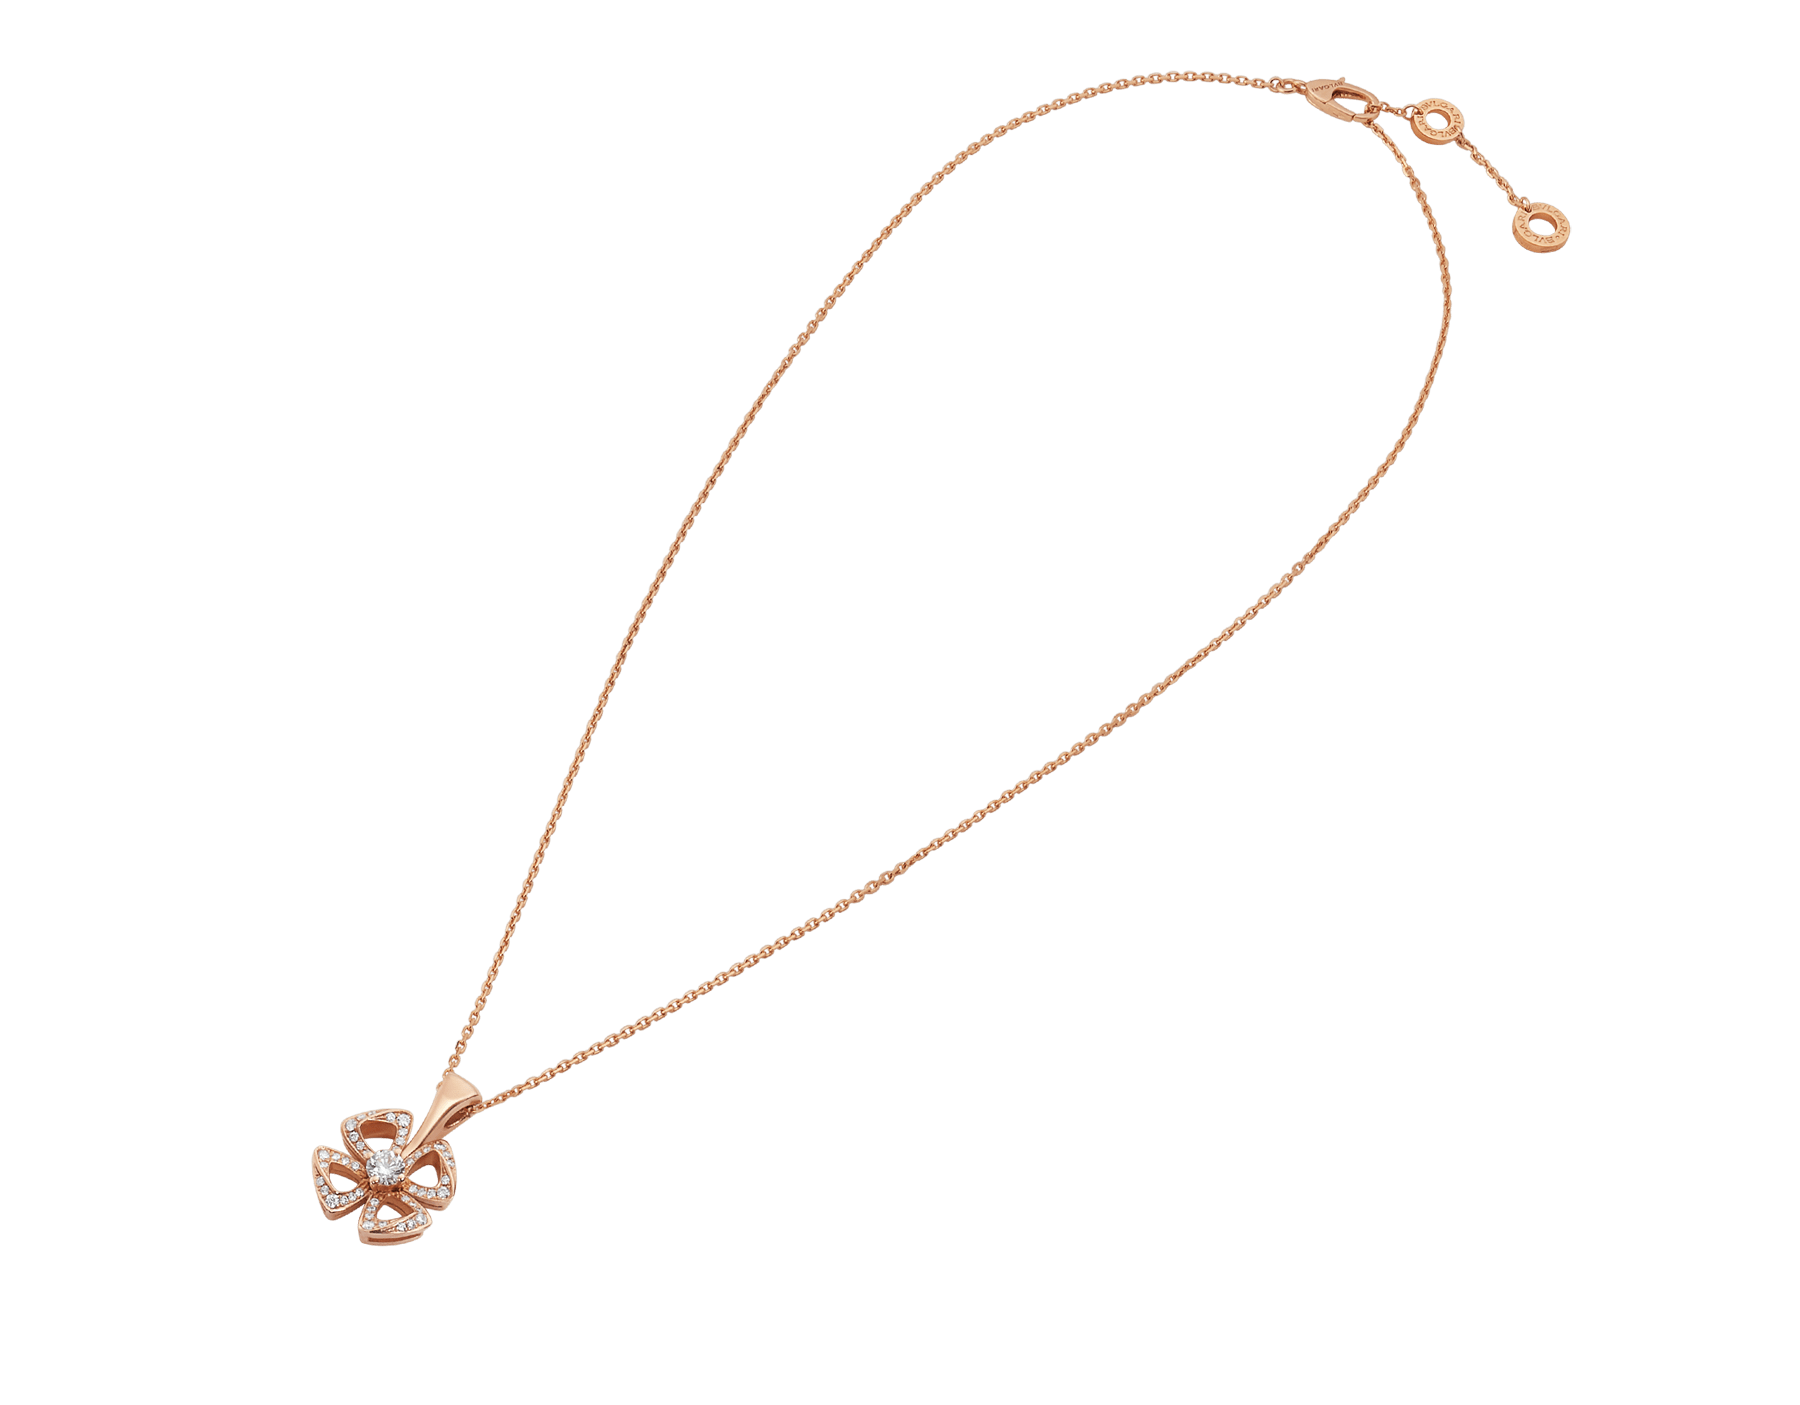 Fiorever 18 kt rose gold necklace set with a central brilliant-cut diamond (0.10 ct) and pavé diamonds (0.06 ct) 358156 image 2